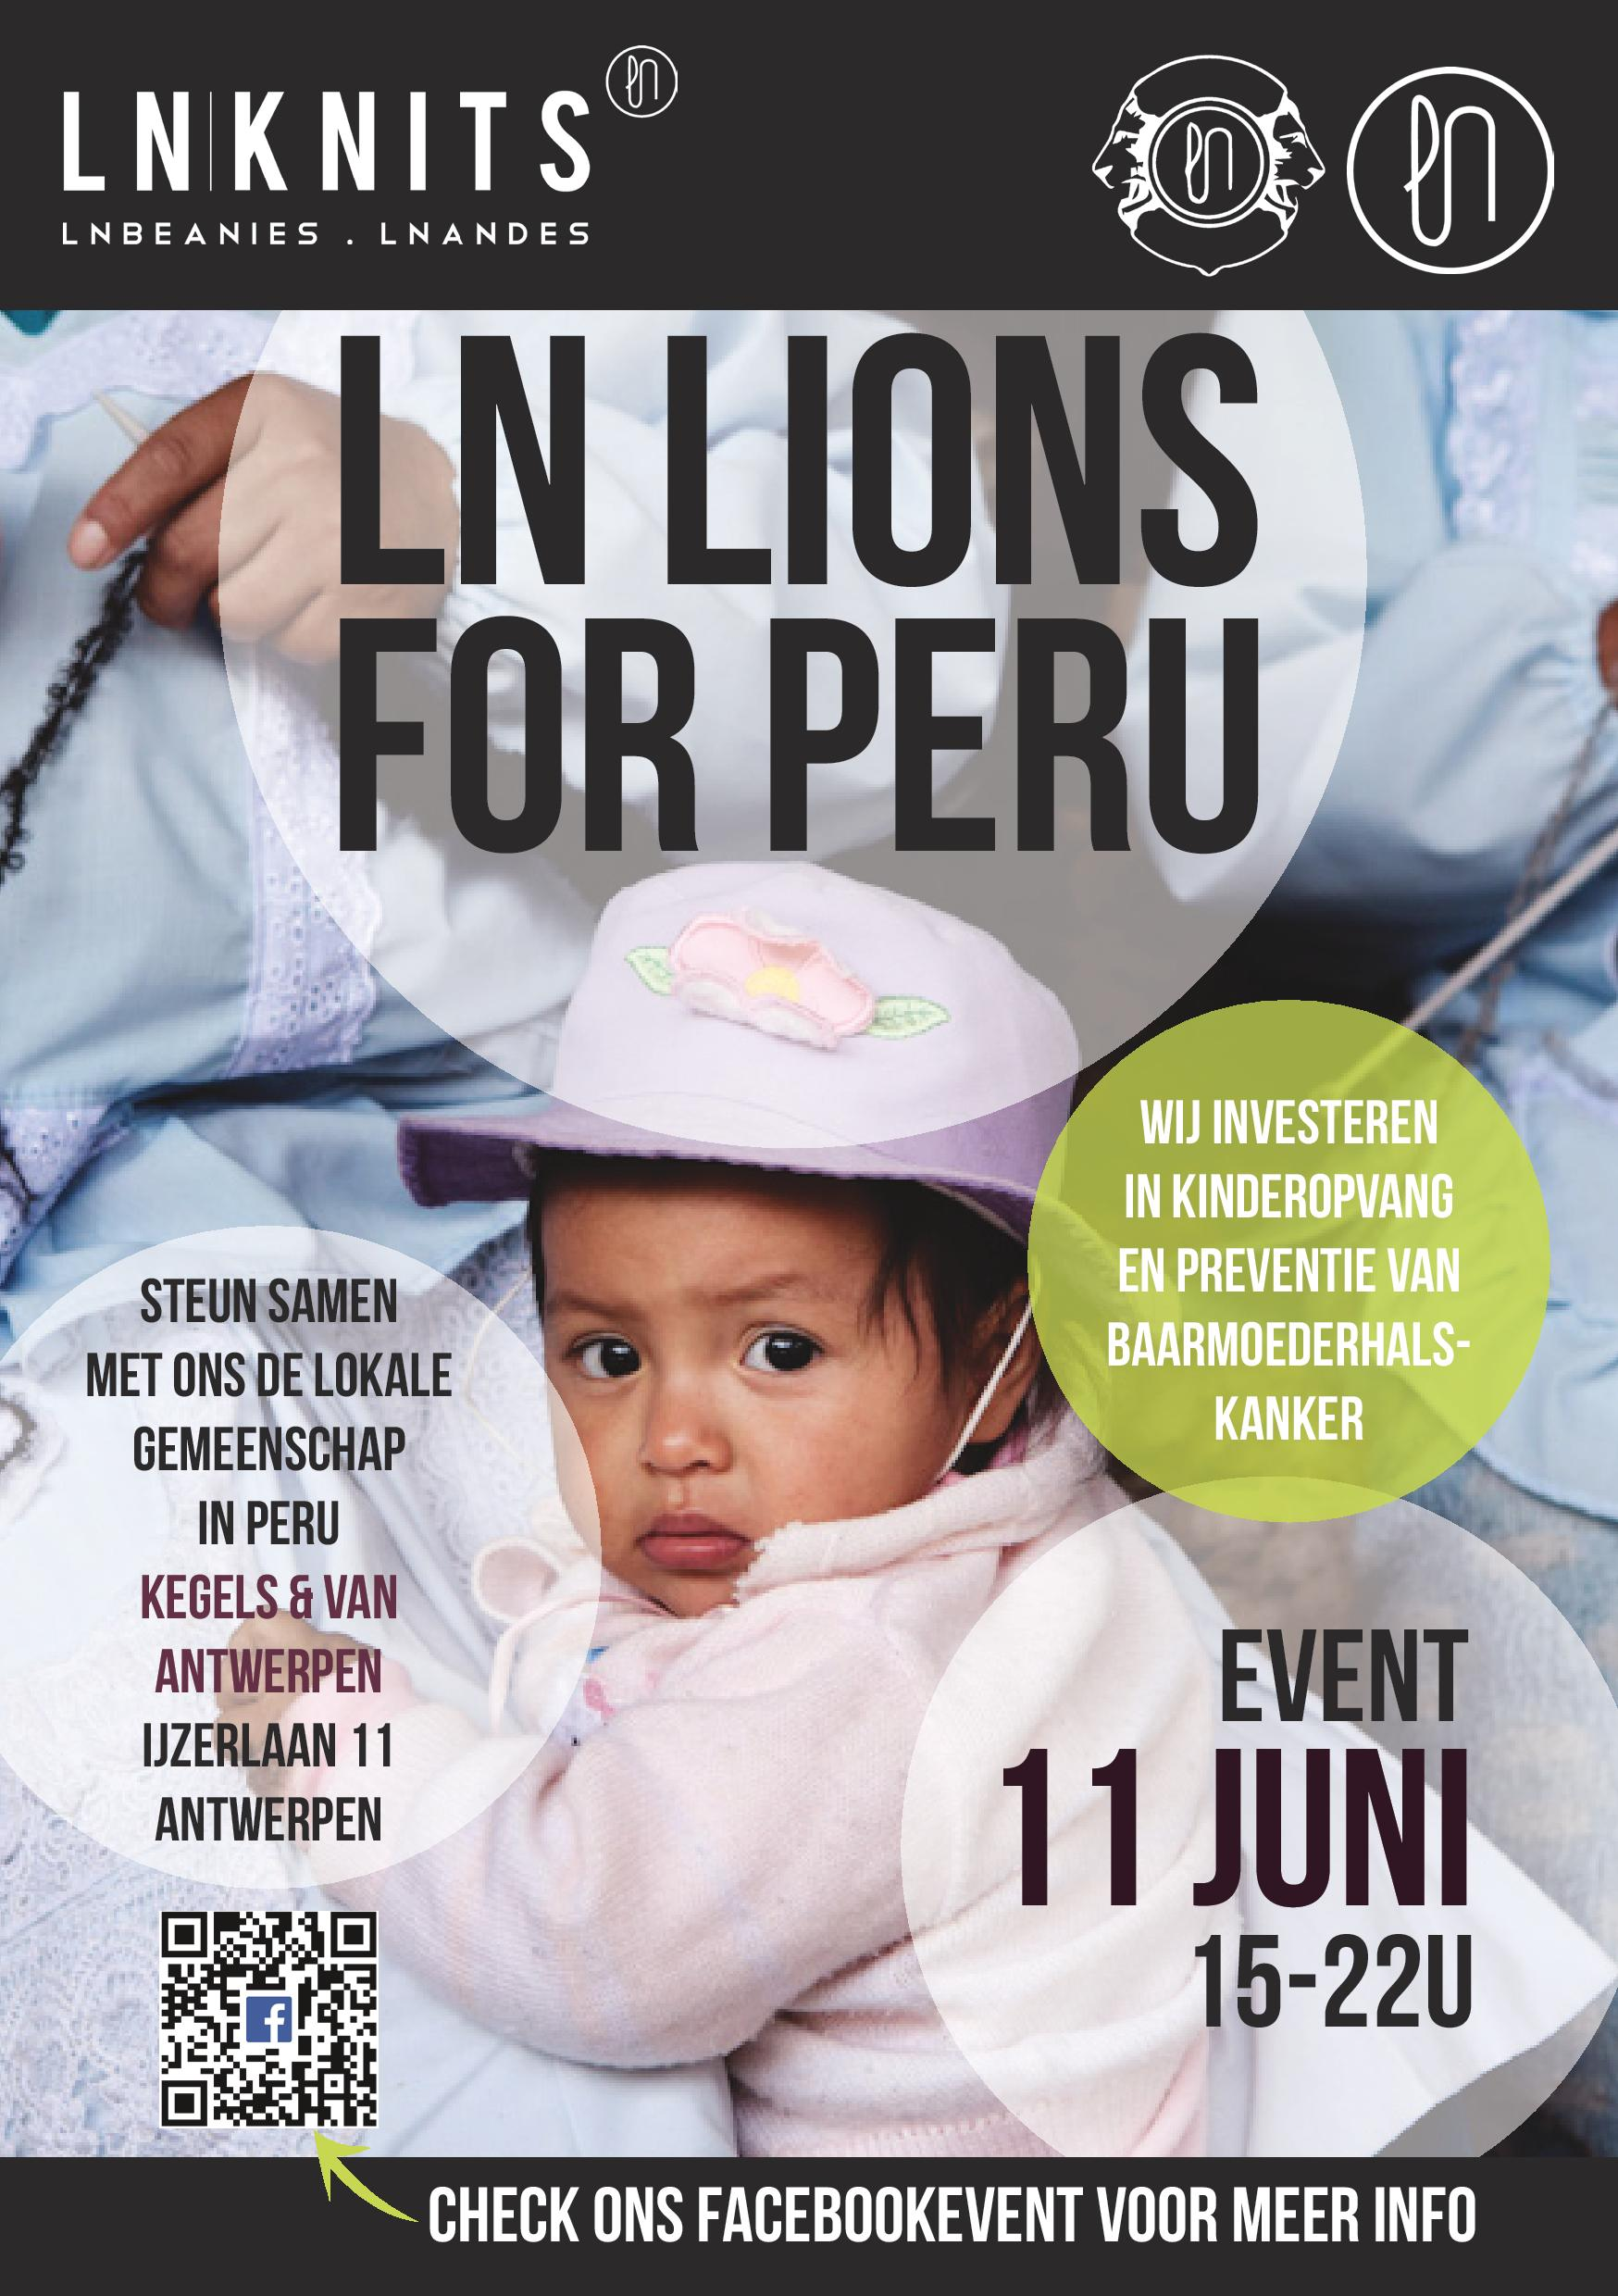 LN Lions for Peru